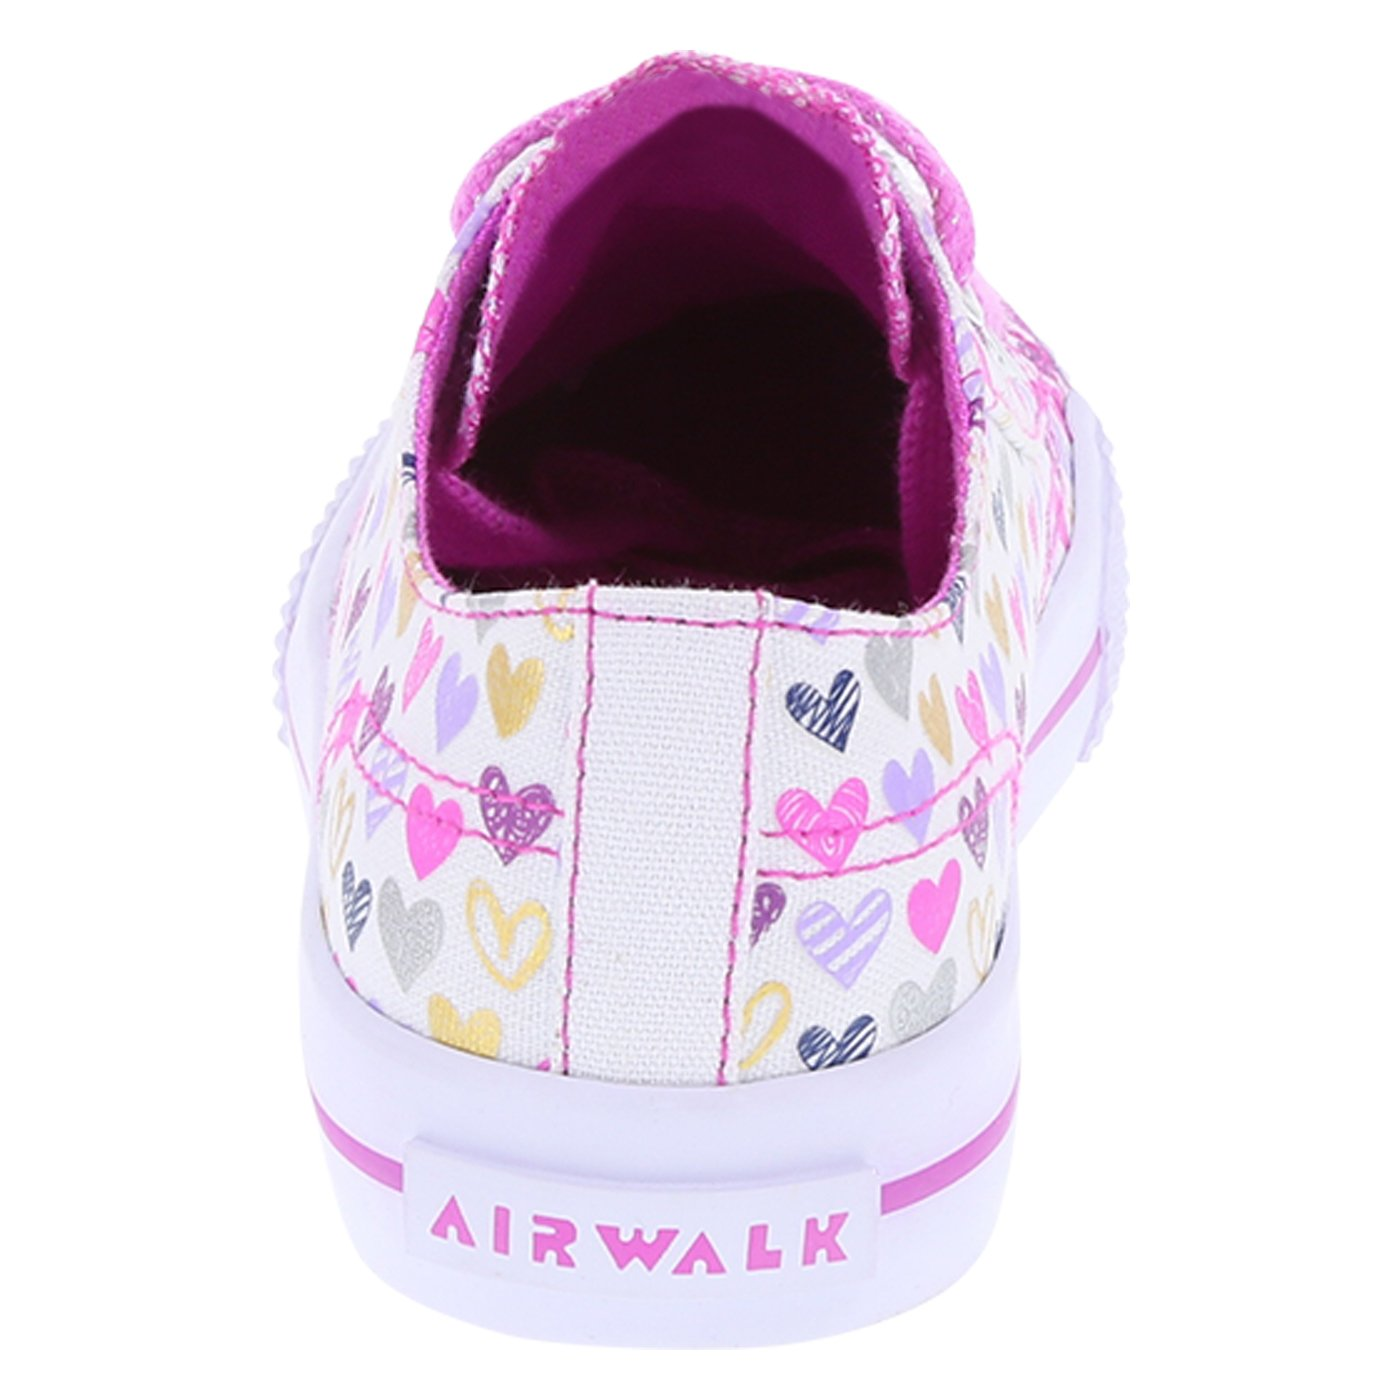 YIBLBOX Candy Baby Girls Fashion Sneakers Lightweight Loafers Slip-On Running Flat Shoes Toddler Kids